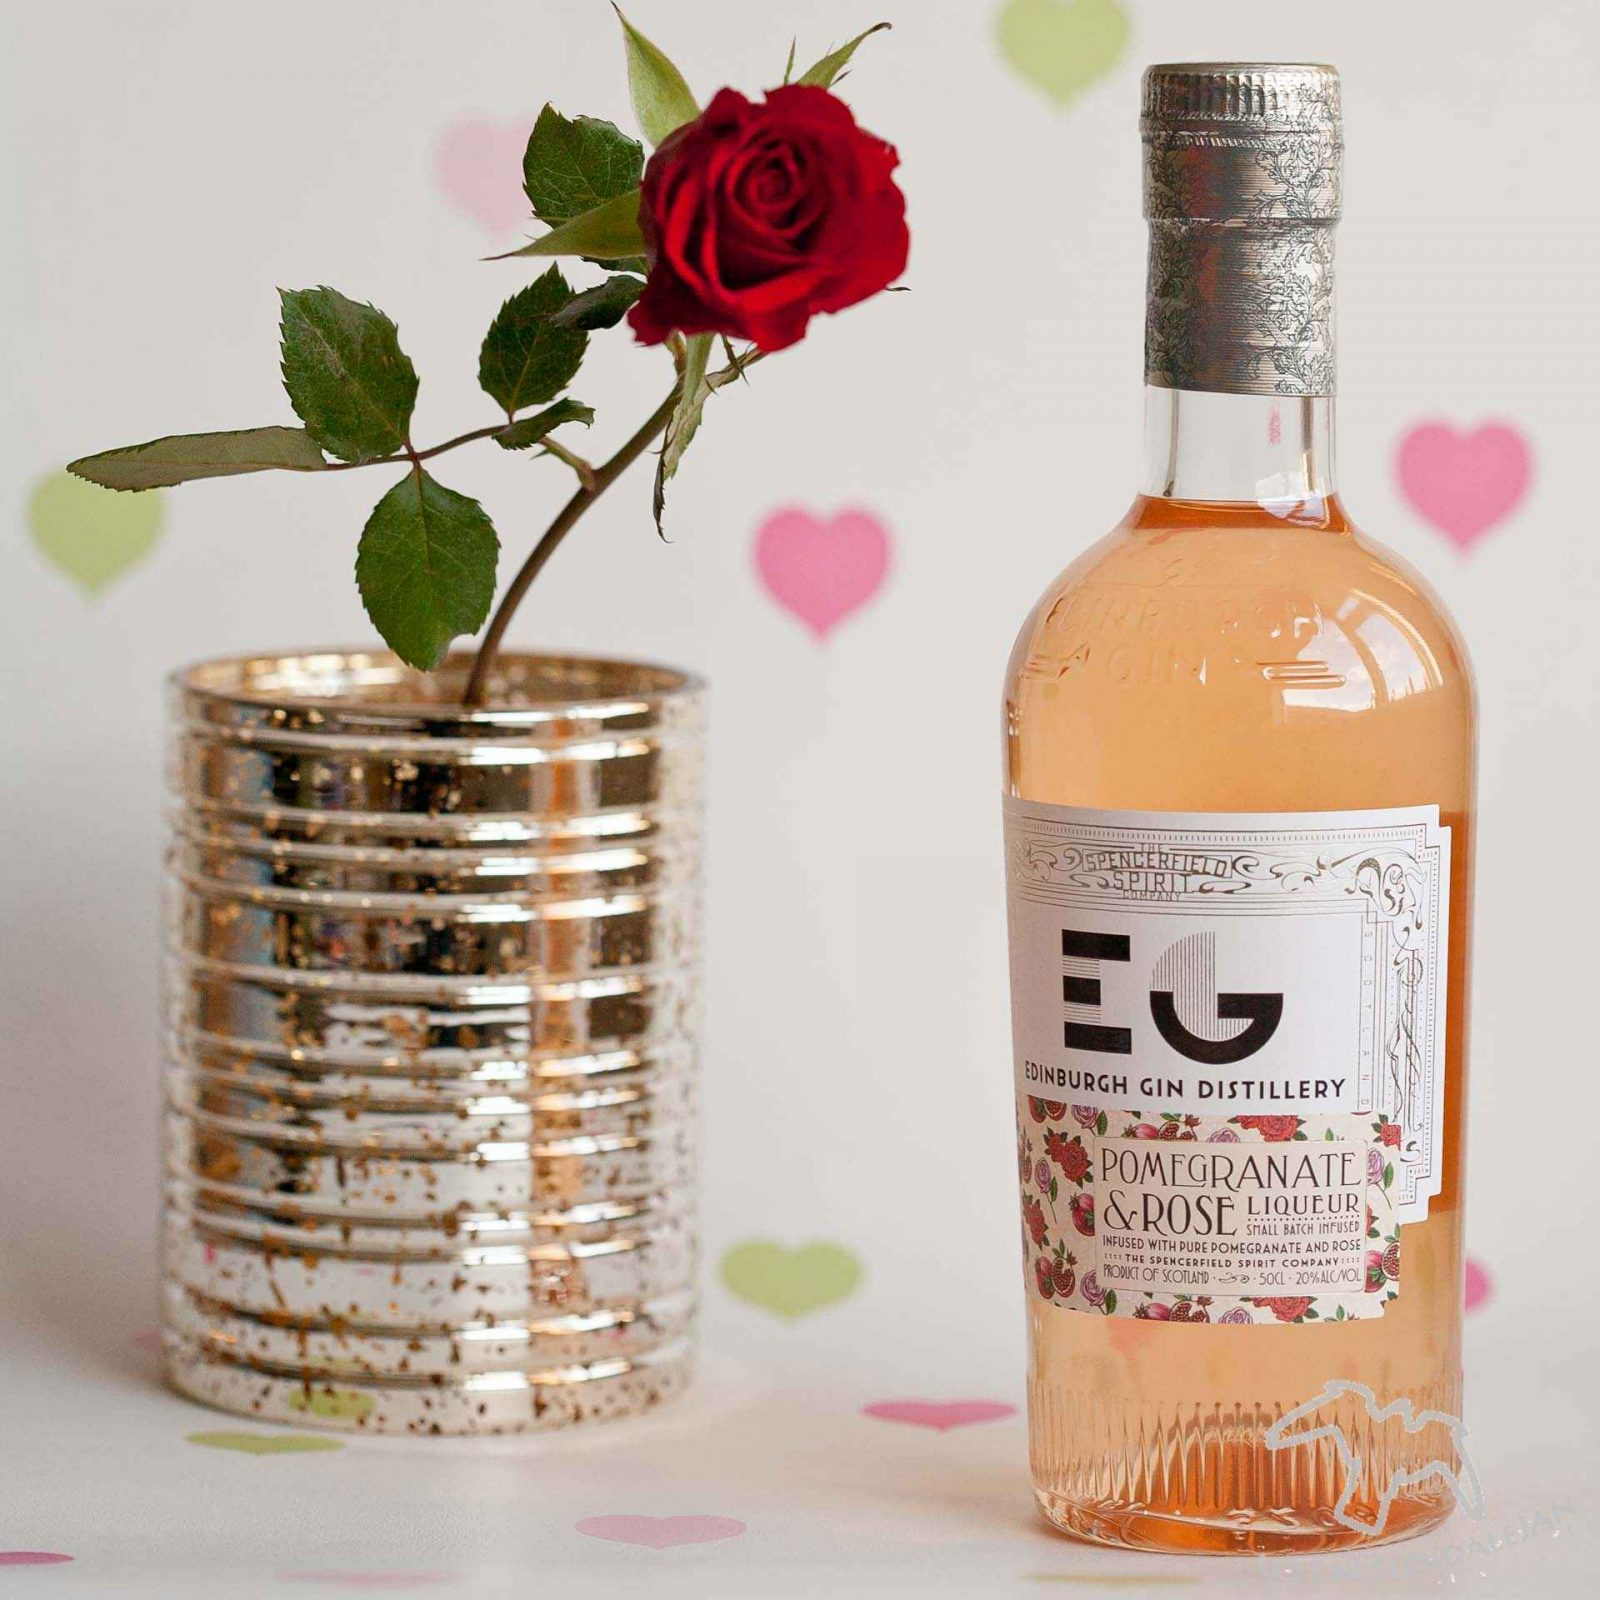 Edinburgh Gin Distillery Pomegranate and Rose Liqueur with a rose and hearts. Boozy Valentine's Gift Guide and Drinks Review on Falcondale Life blog. Unusual alcohol and gifts for drinkers on Valentine's day. Get something for him or her which is more interesting that just chocolate and wine. On test: Liqueurs, whisky, brewing kit, drinking game. Boozy gifts reviewed by FalcondaleJan.